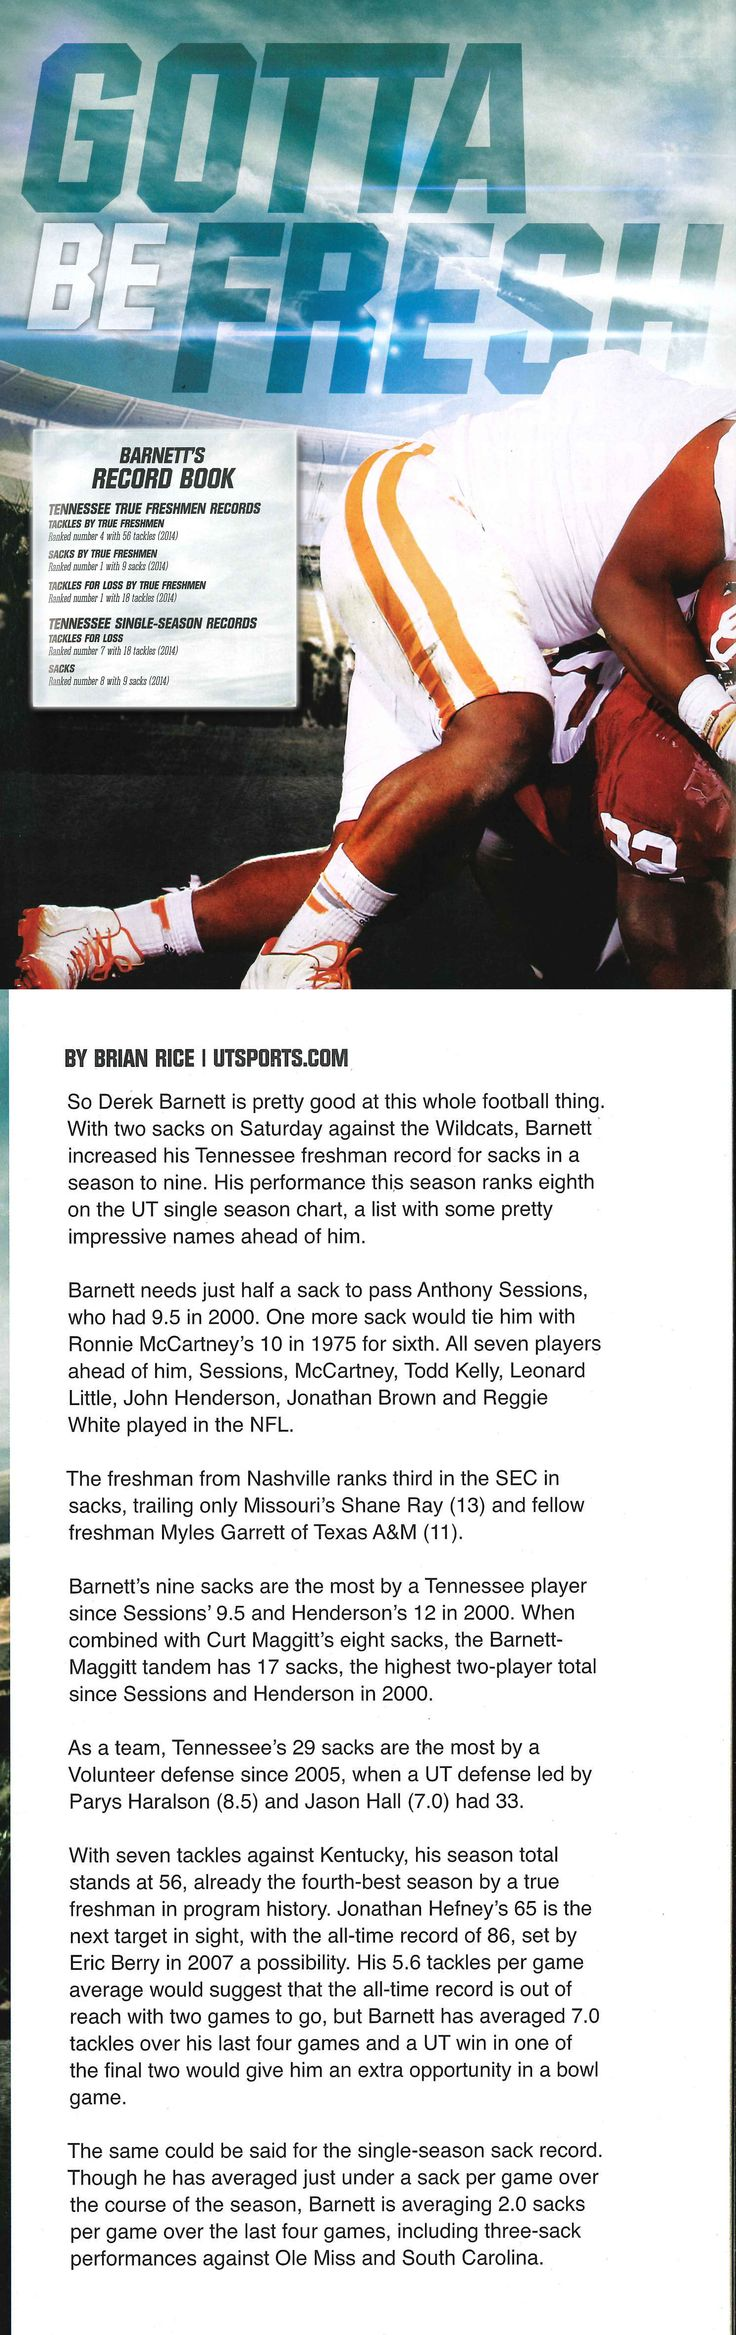 """Curious about this year's rising stars? Catch up on the @UTSports Football underclassmen through this #SummerReading clip: """"Gotta Be Fresh,"""" about 2014 freshman Derek Barnett from last year's UT program.   Hungry for more? This FoxSports article from May also has a lot to say on this sophomore defensive end. http://www.foxsports.com/college-football/story/tennessee-volunteers-sec-breakout-stars-derek-barnett-052115"""